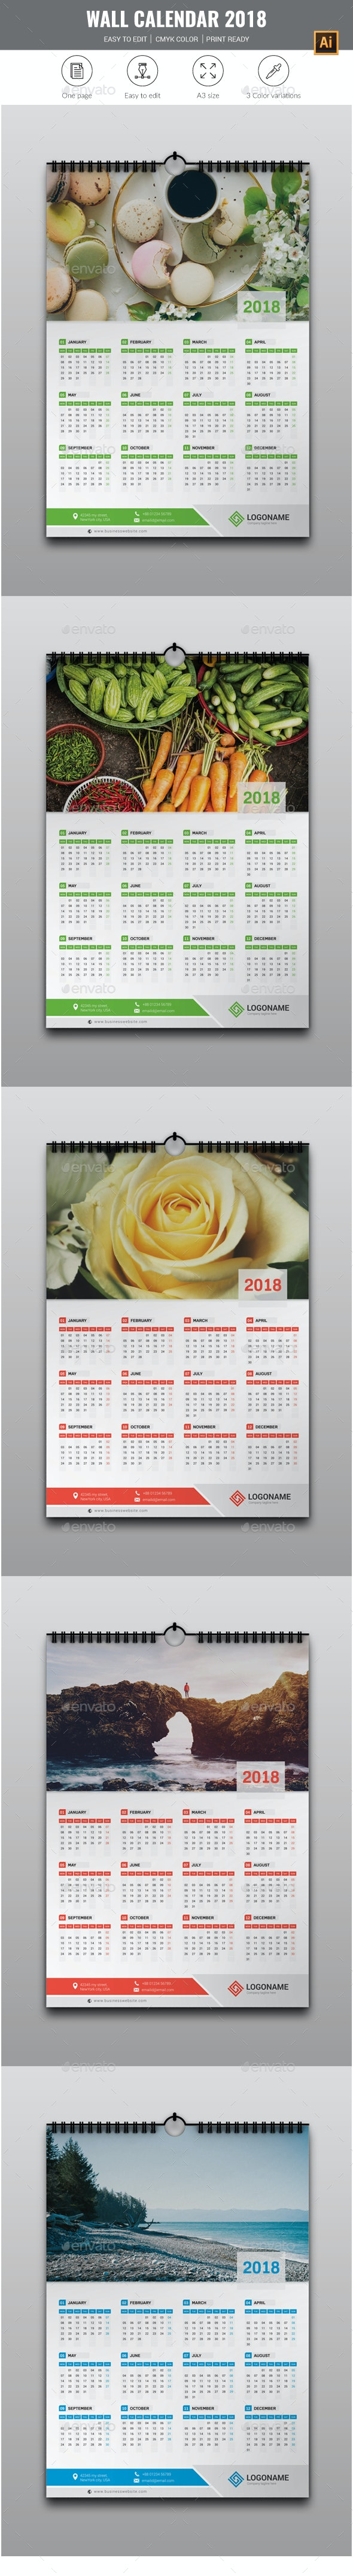 1 Page Wall Calendar 2018 - Calendars Stationery